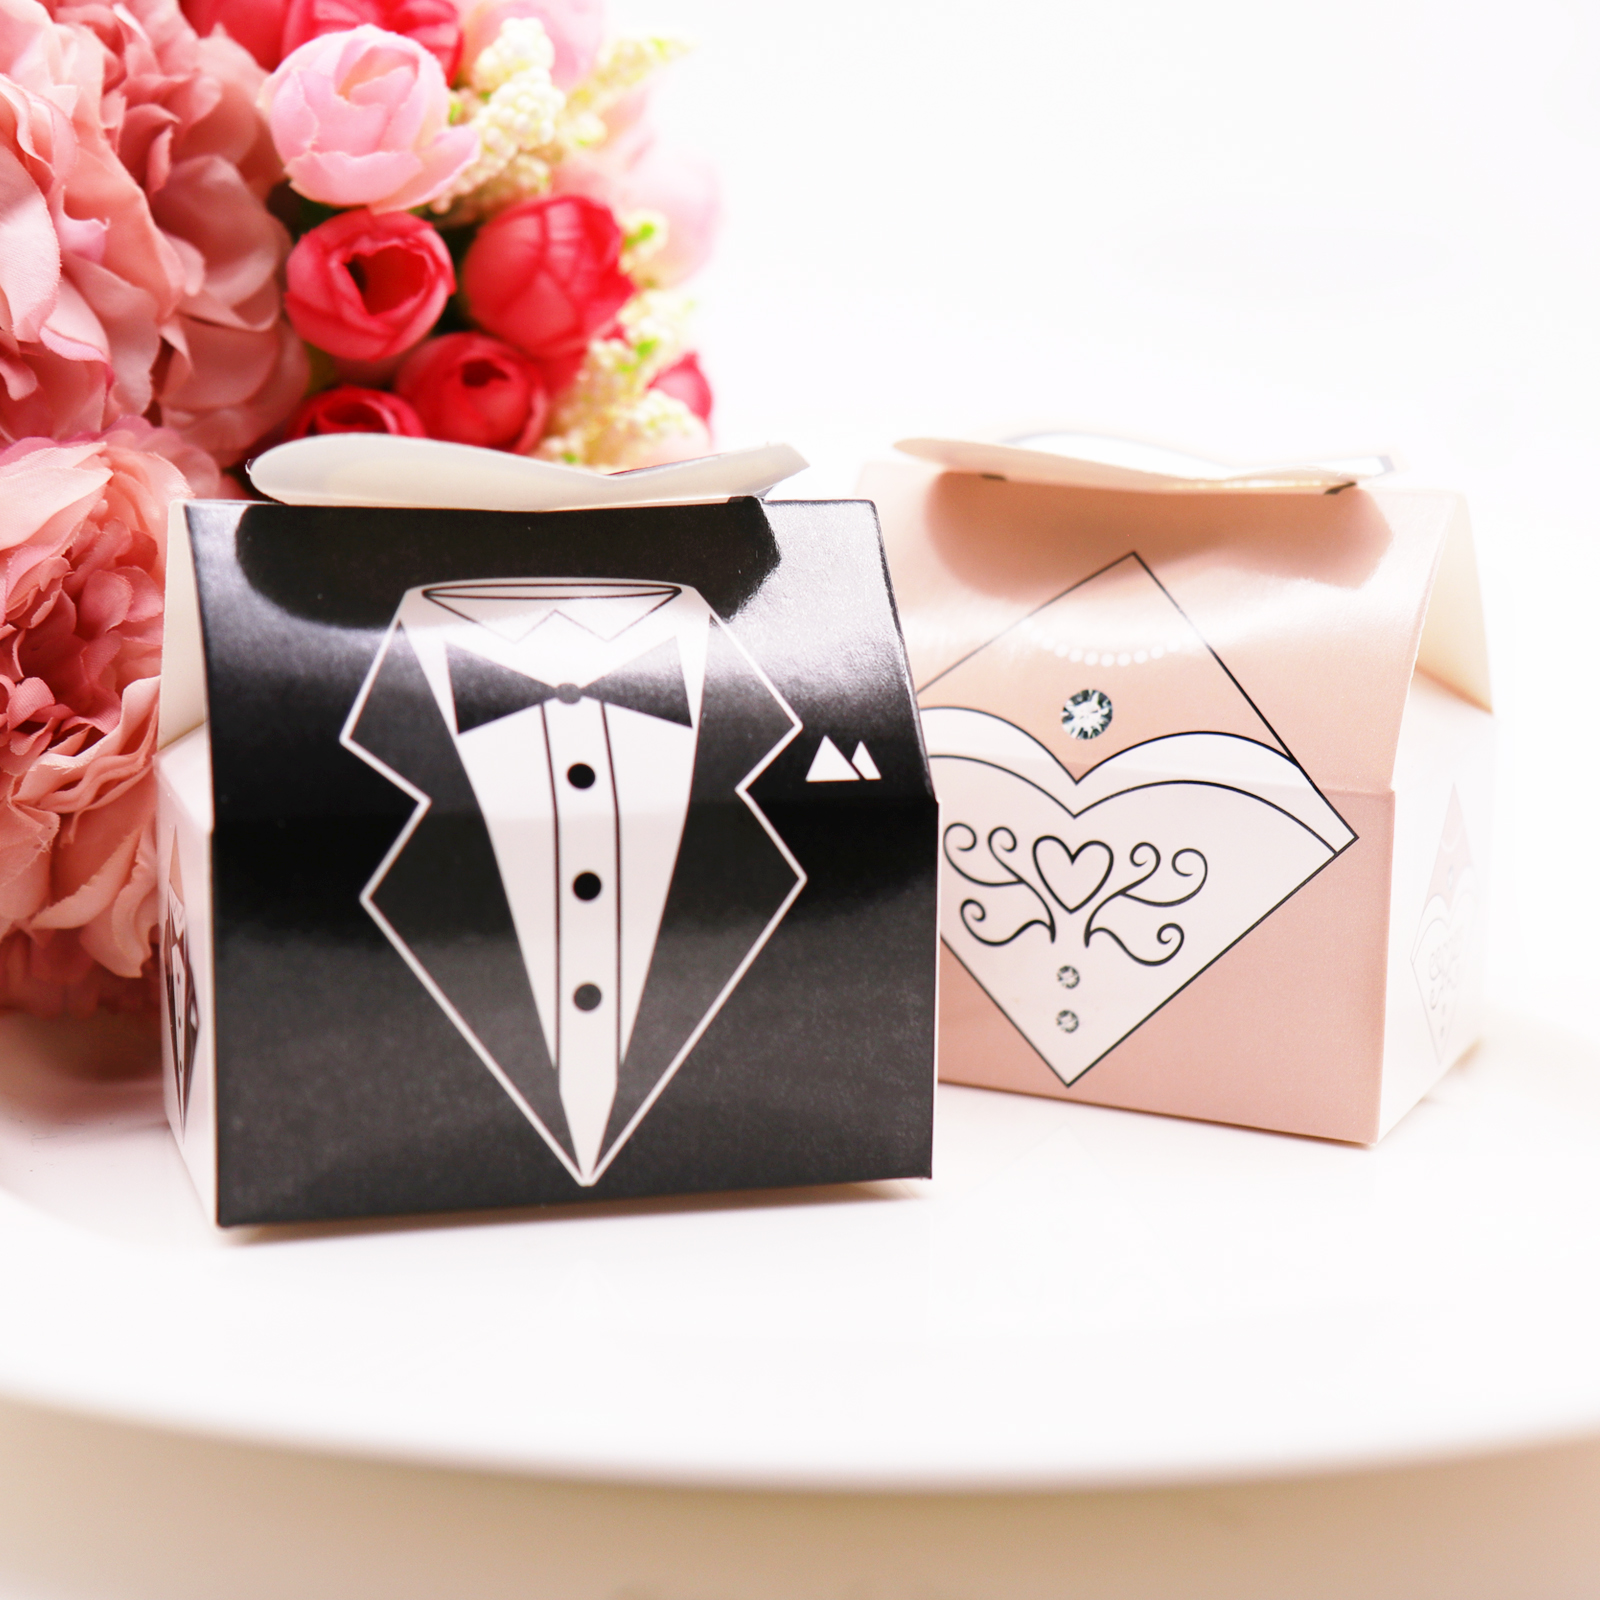 50pcs Bride And Groom Candy Box Gift Box For DIY Bridal